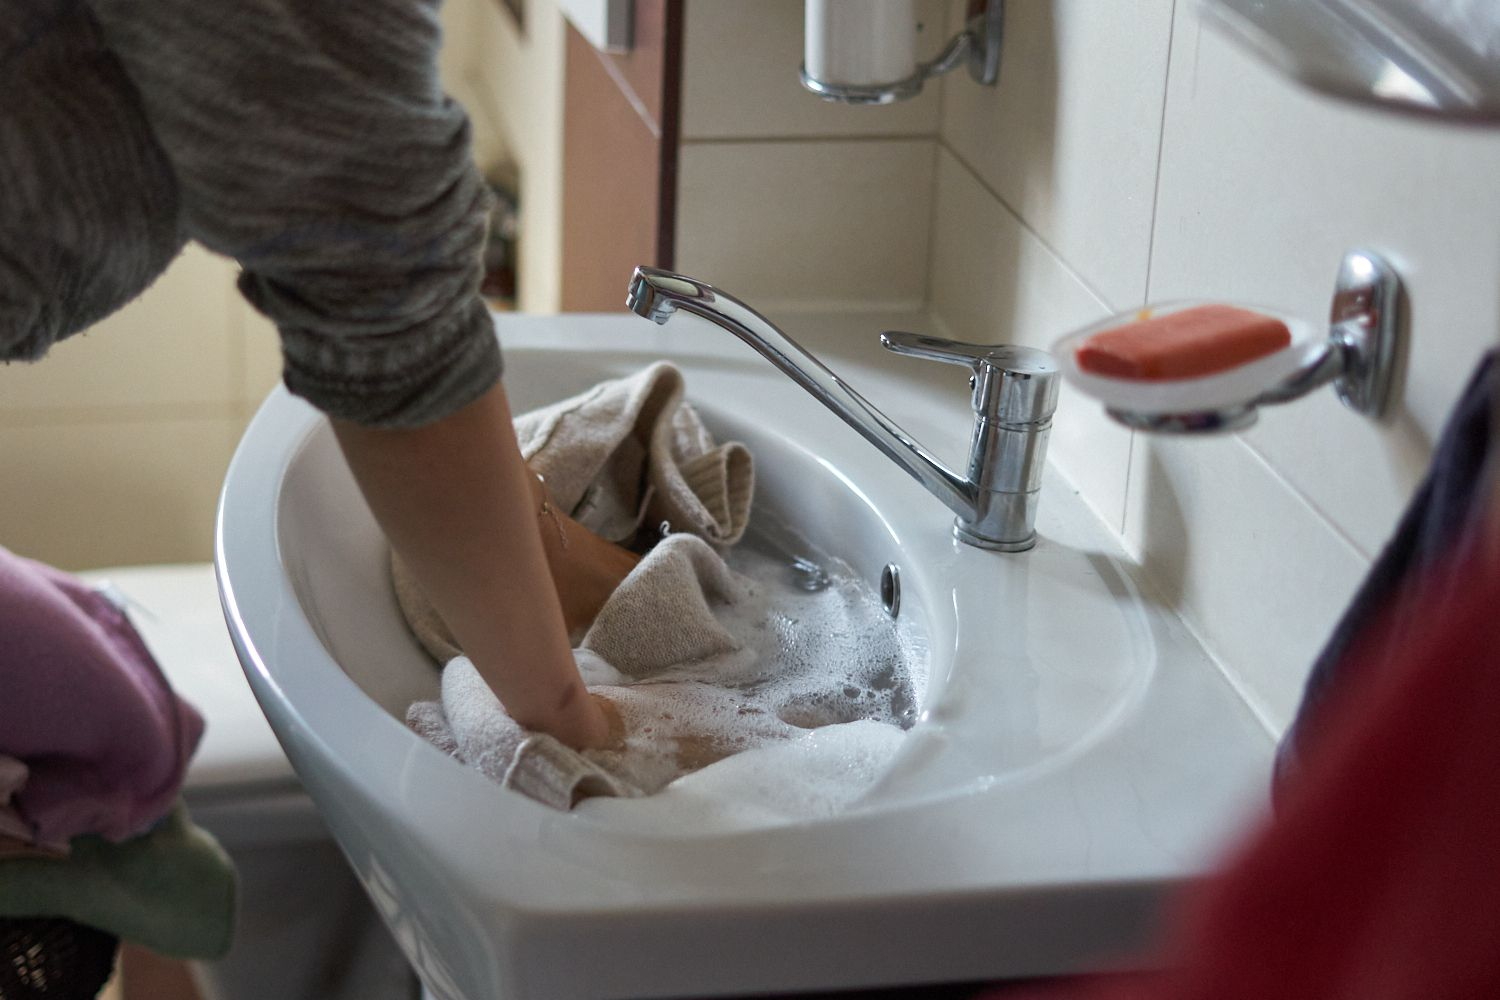 person gently washes sweater in small bathroom sink with soap and water